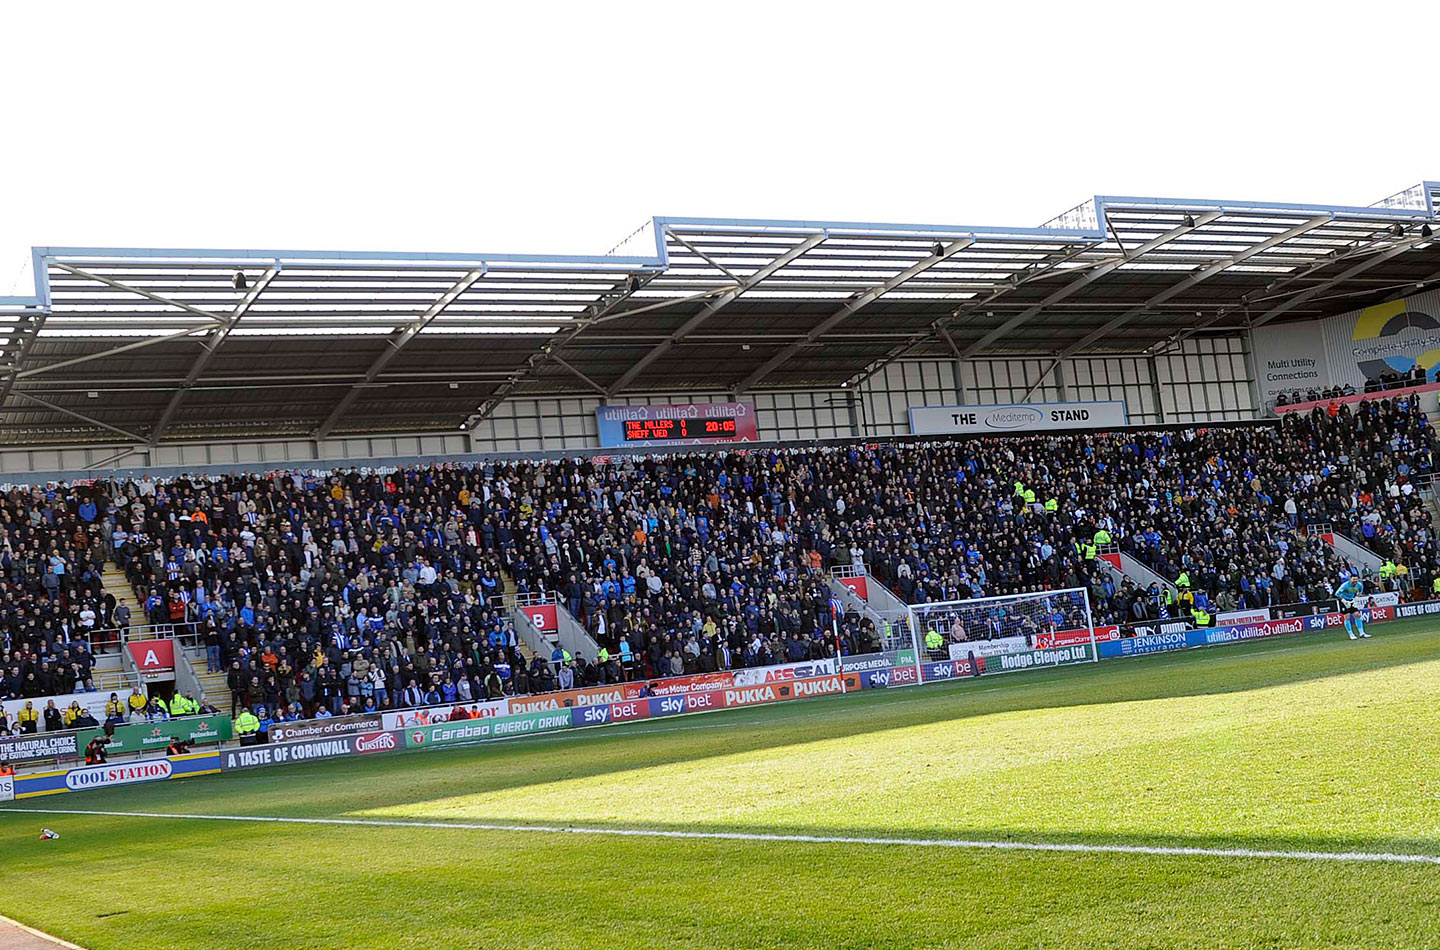 rotherham_crowd.jpg